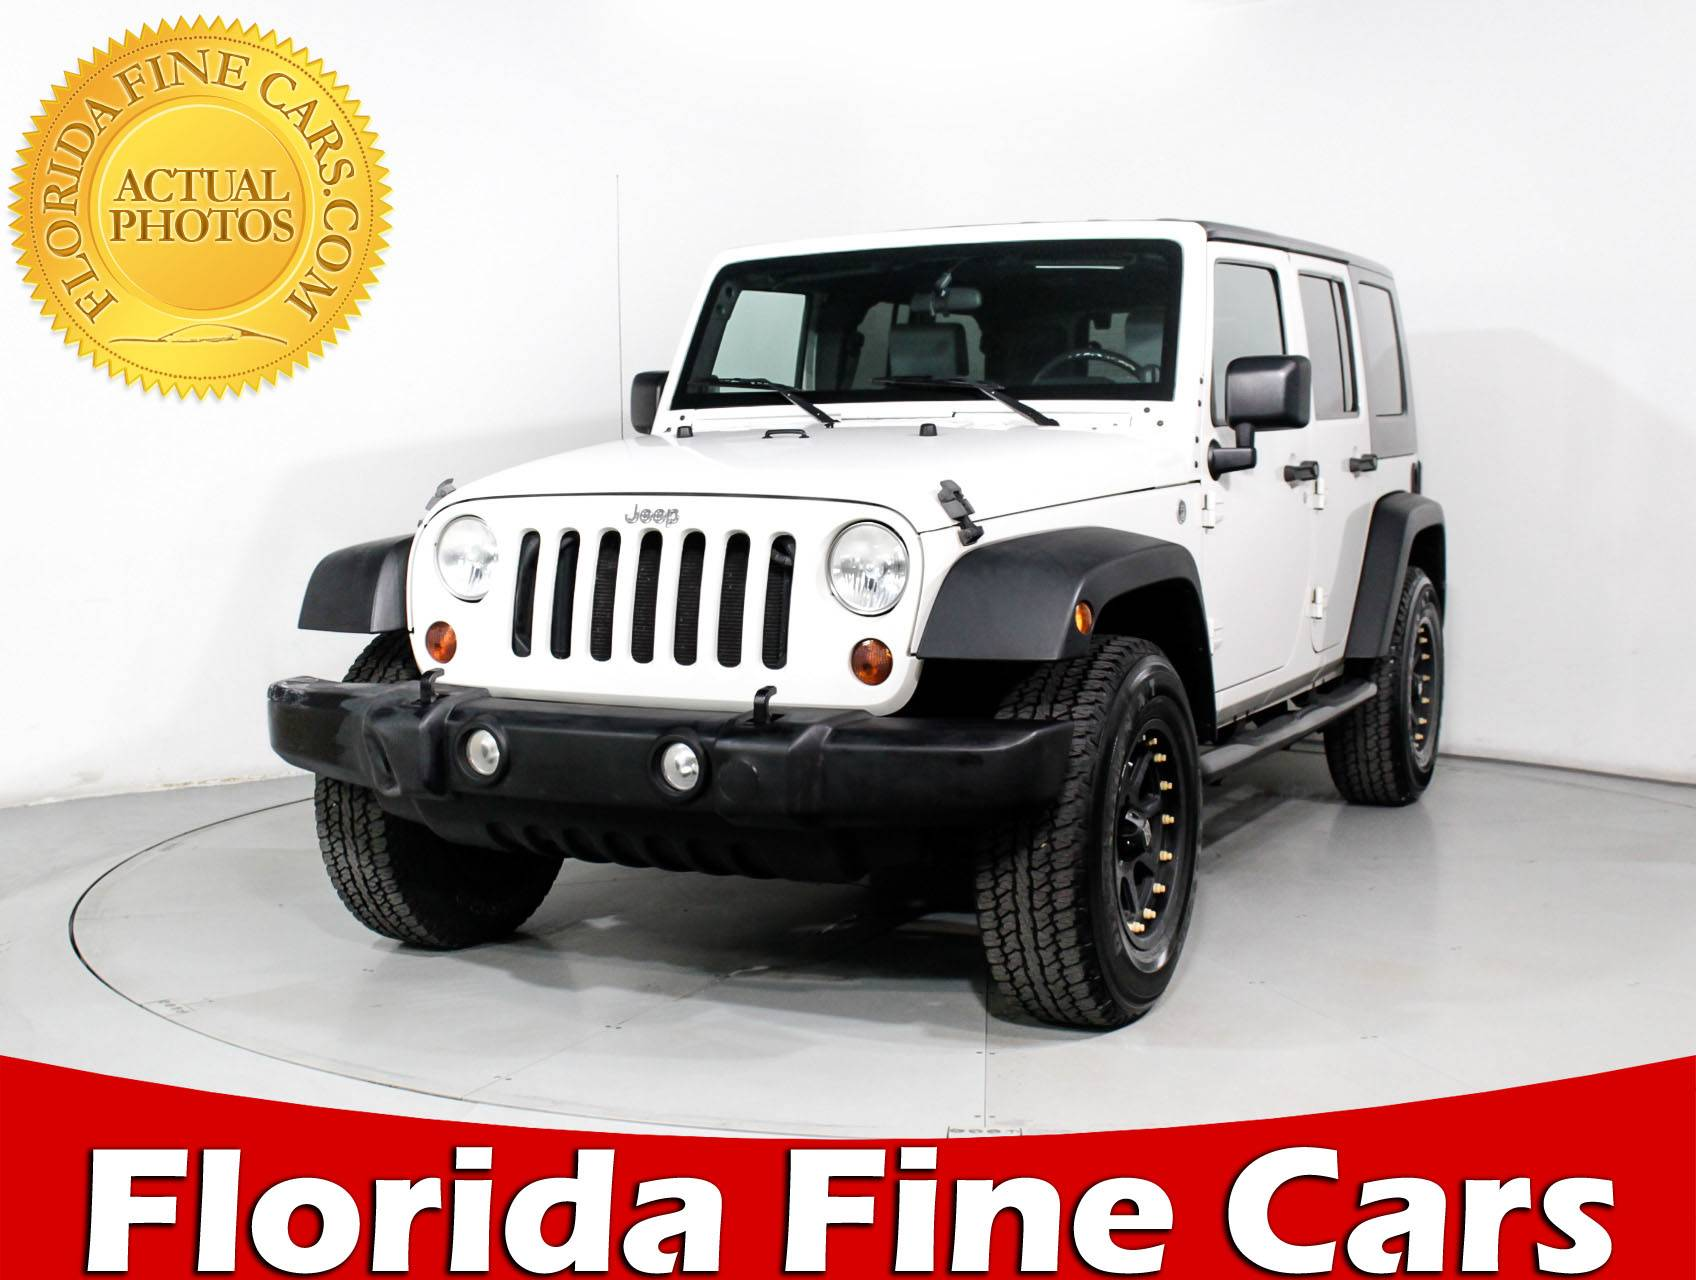 Used 2010 JEEP WRANGLER UNLIMITED SPORT SUV For Sale In MIAMI, FL | 90037 |  Florida Fine Cars